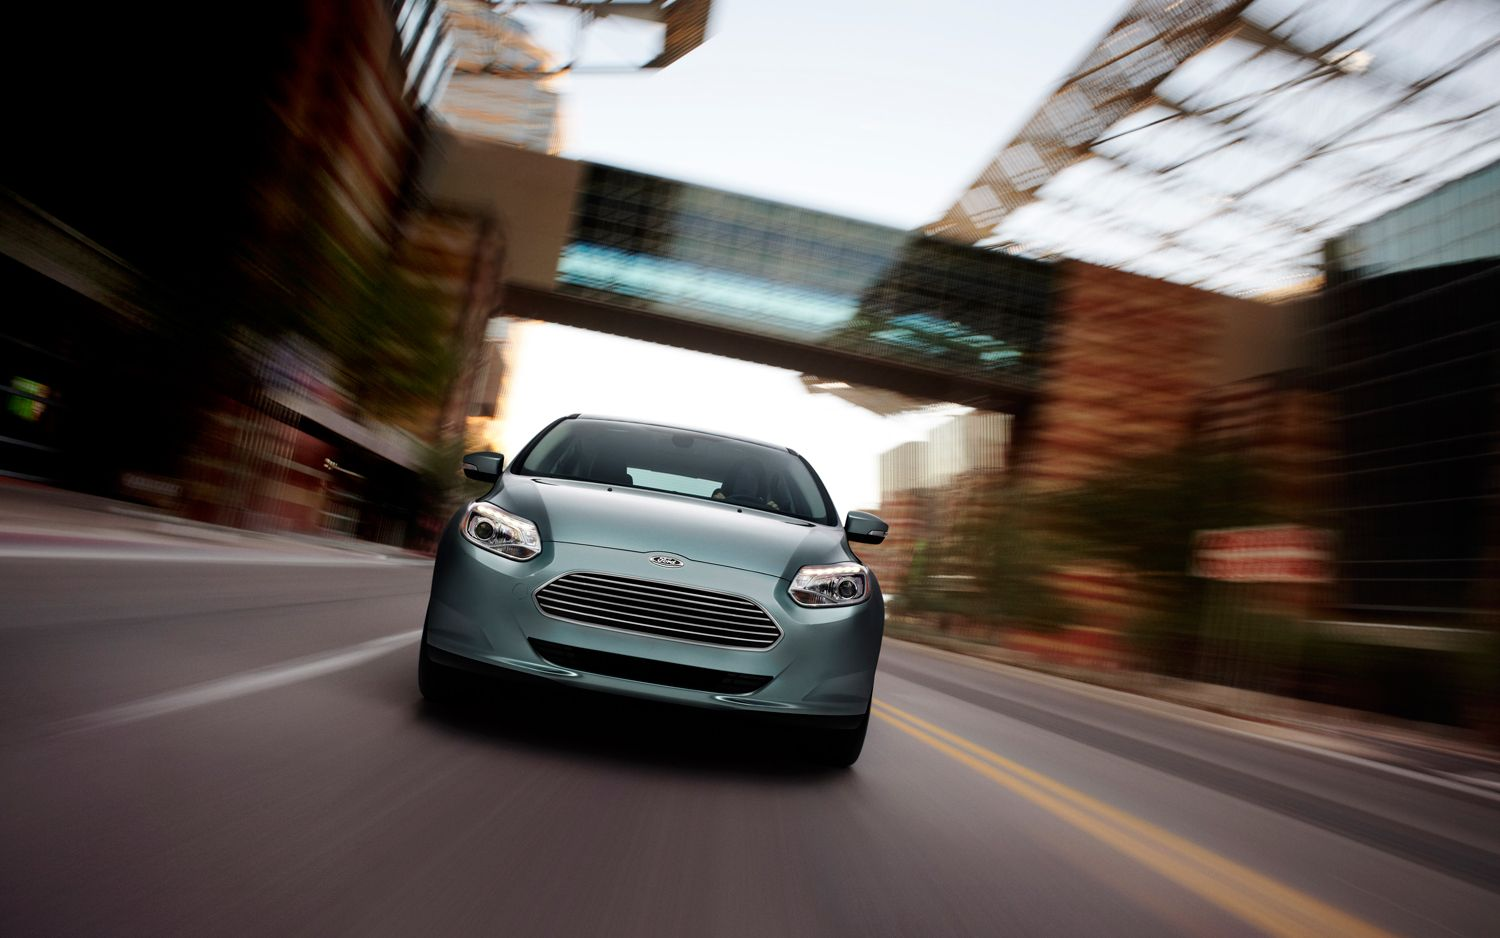 2012 Ford Focus Electric Front View Motion1